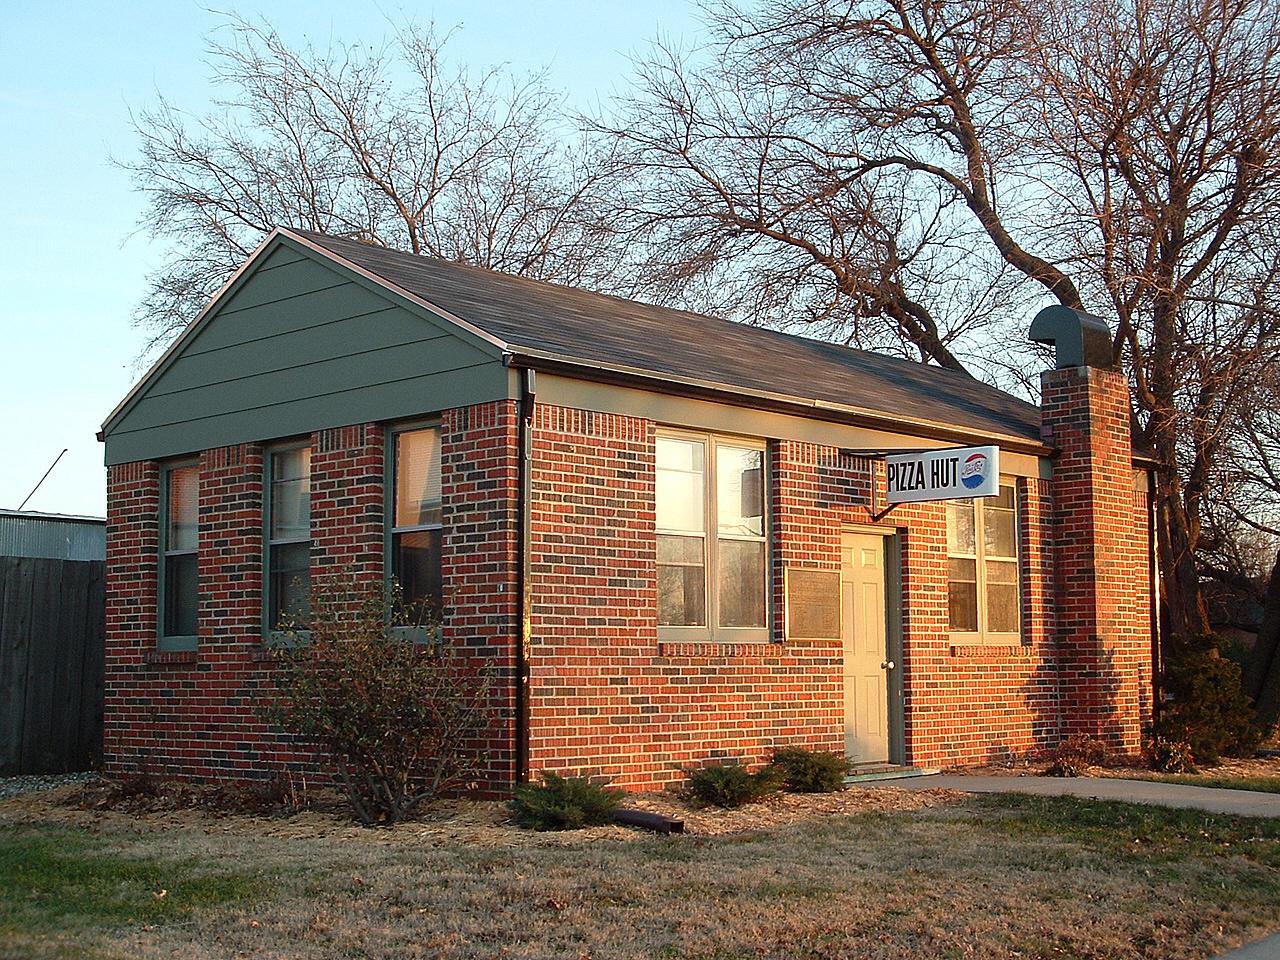 The original Pizza Hut building, opened on June 15, 1958 at the corner of Kellogg and Bluff by brothers Frank and Dan Carney, both students at Wichita State University. This photo is from 2004, after the building had been moved to the campus. Cf. Wikipedia